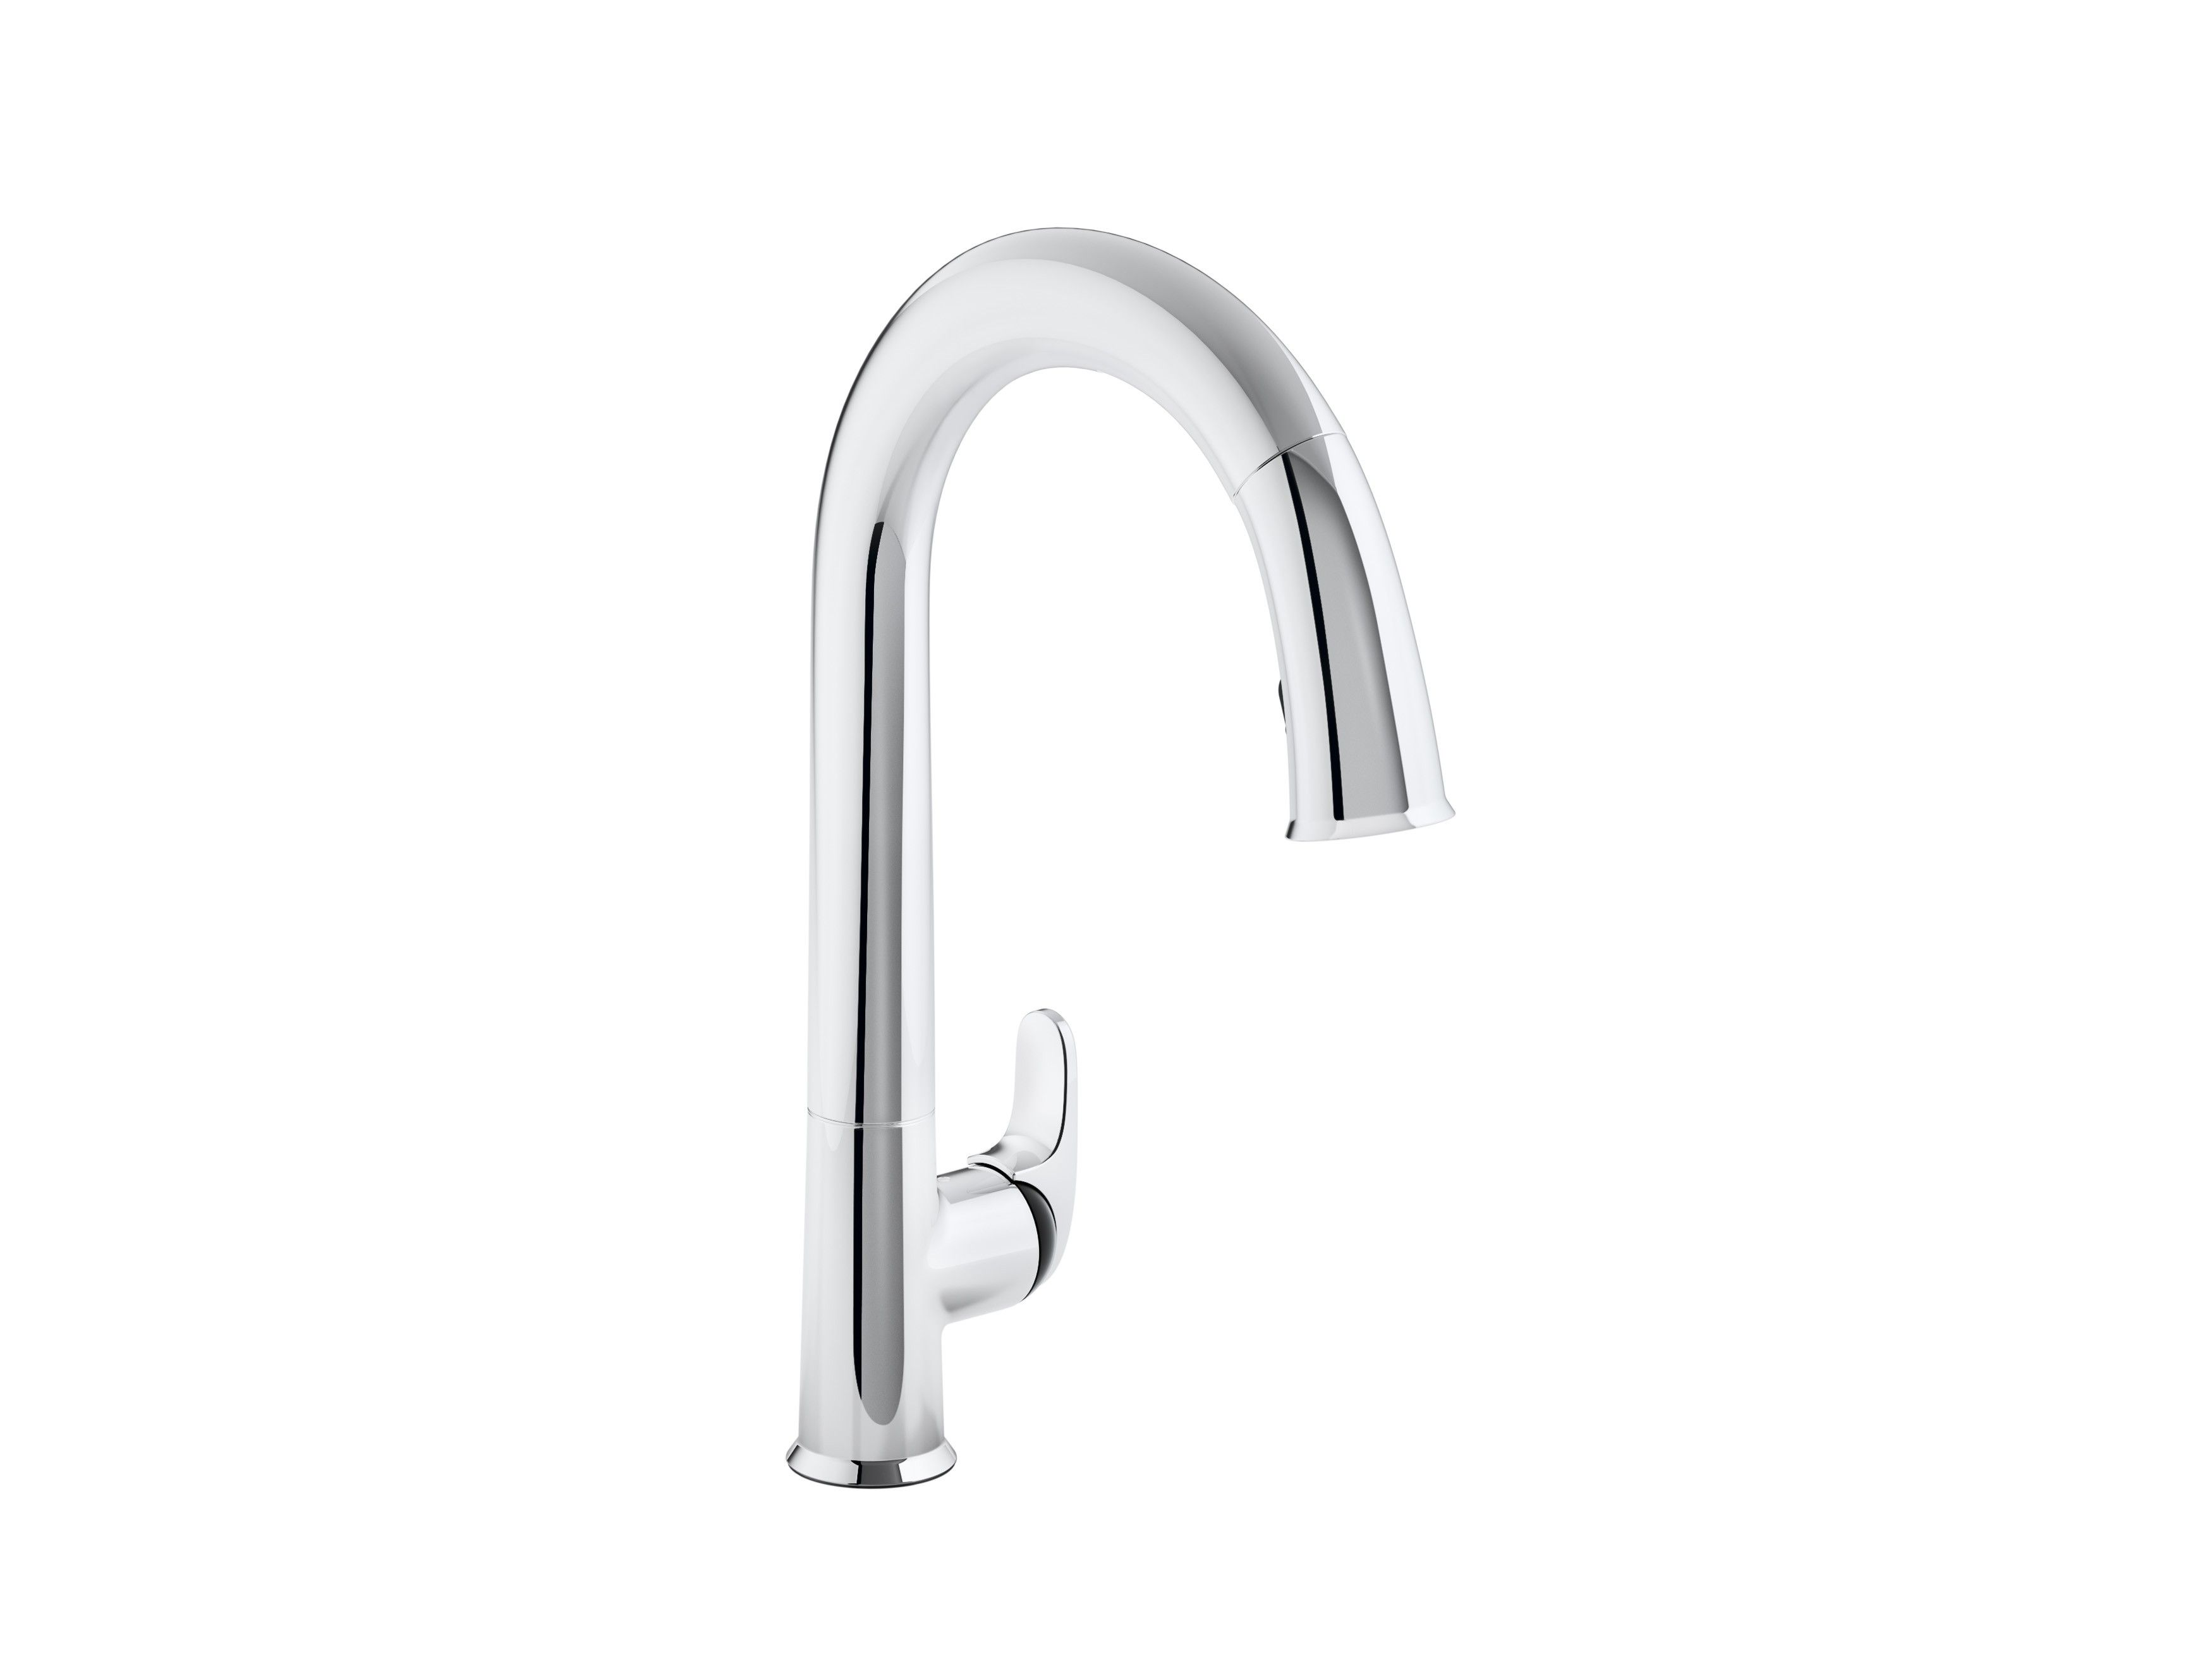 mount faucet kohler purist sink with pin degree bathroom wall faucets trim